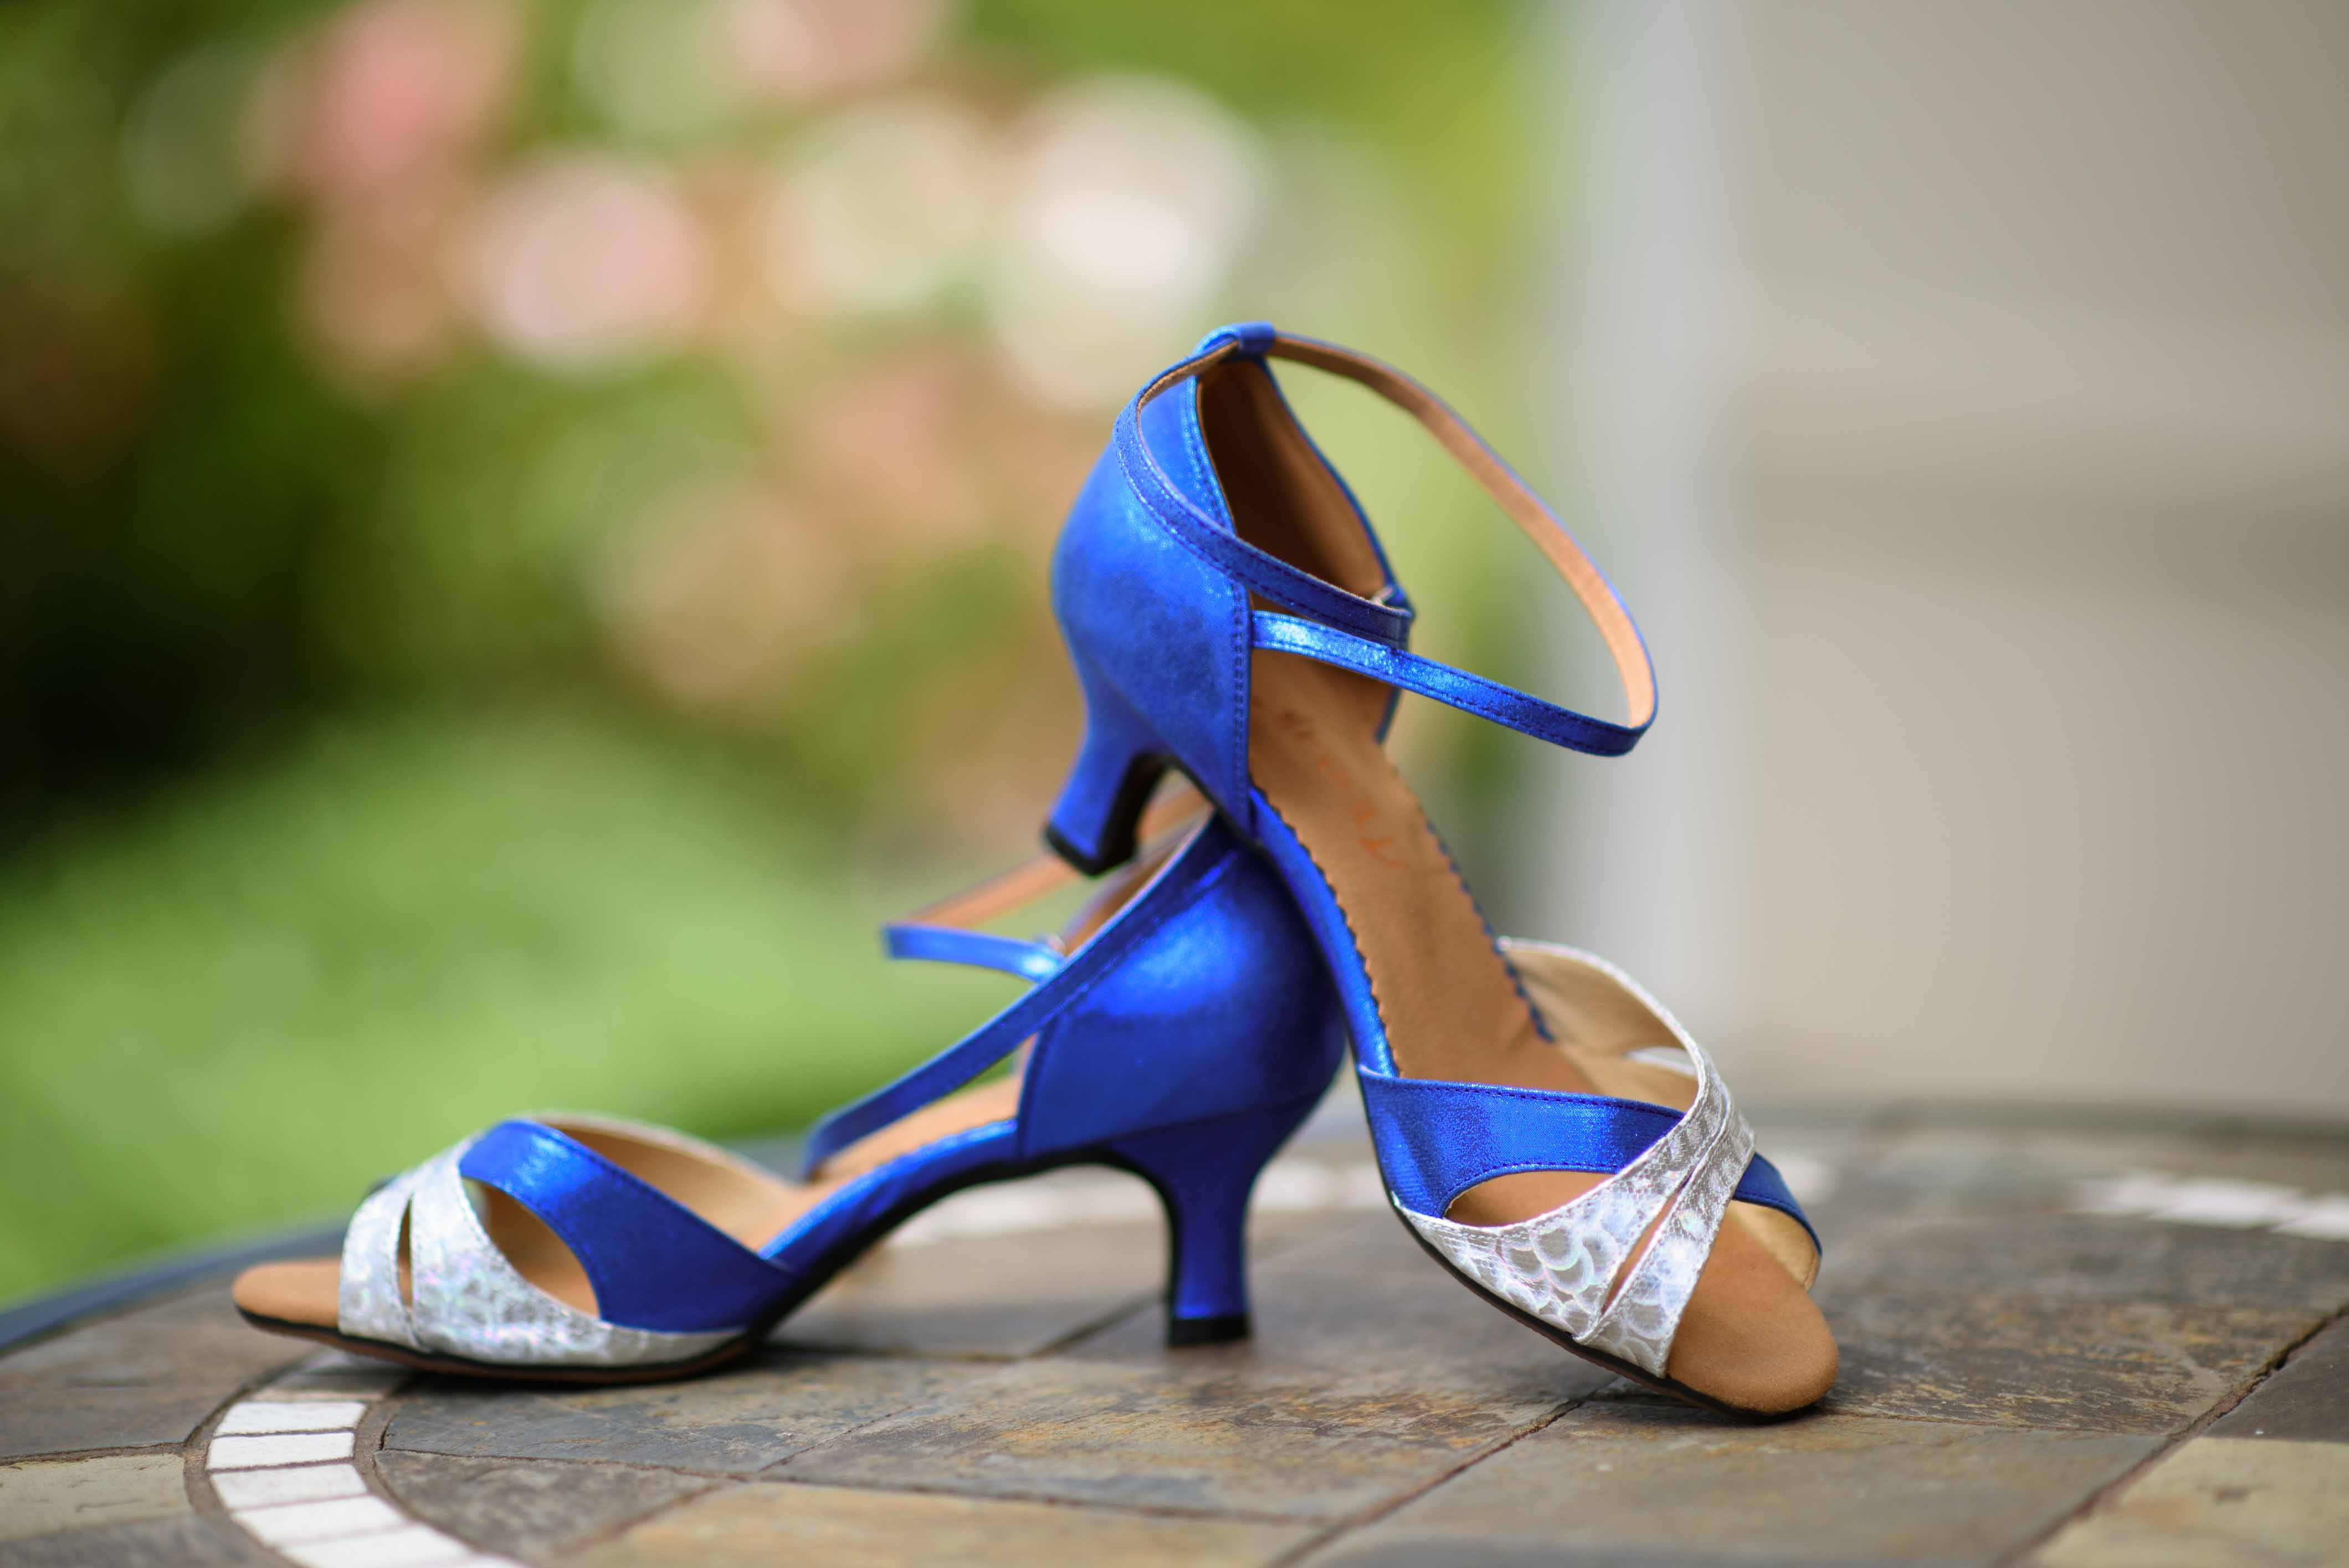 blue bridal shoes - dr who wedding accessories - unconventional wedding